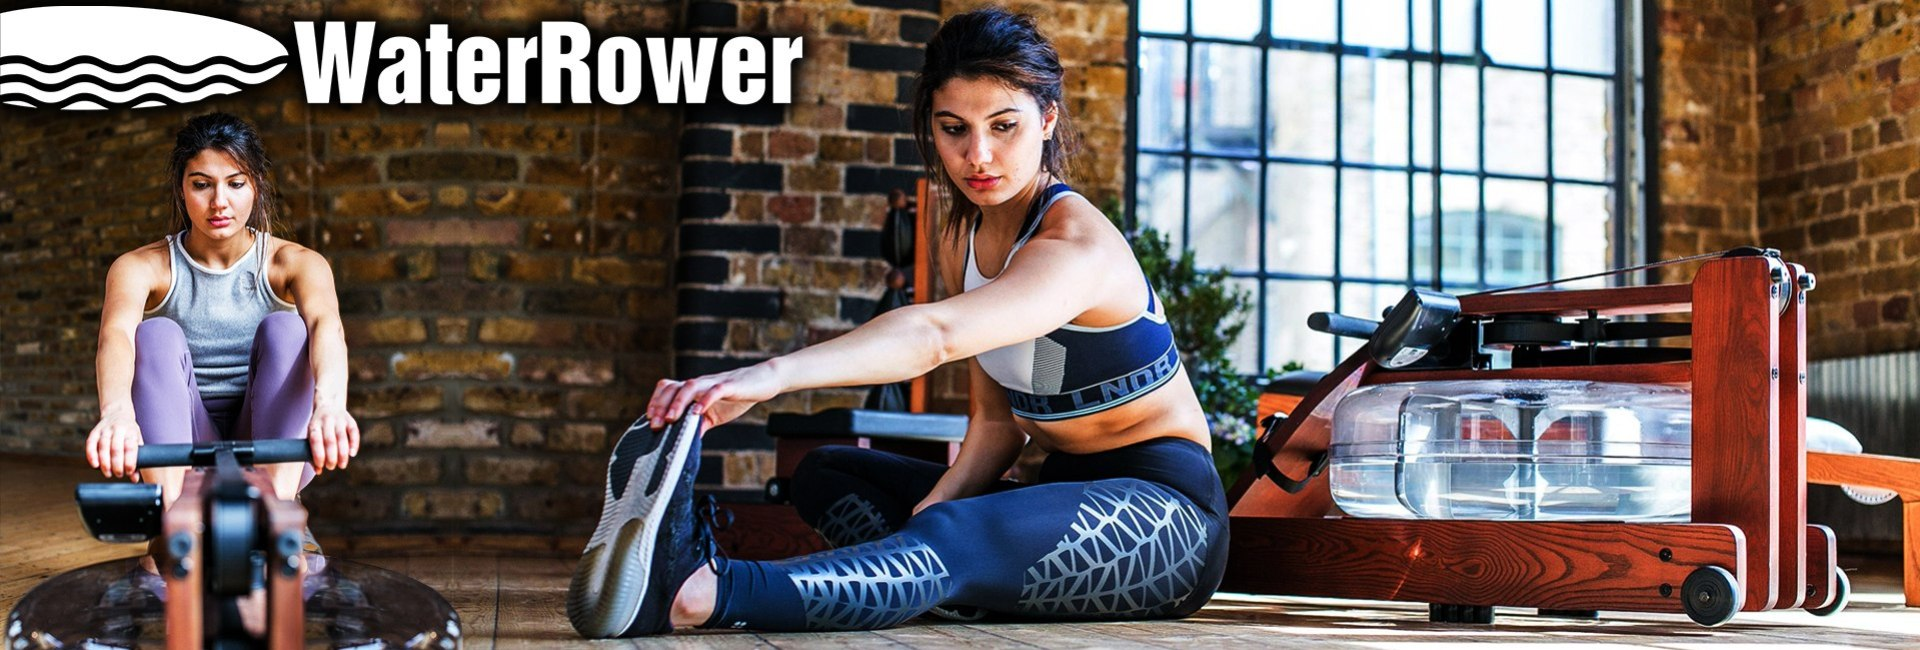 WaterRower Rowing Machines - Official store!